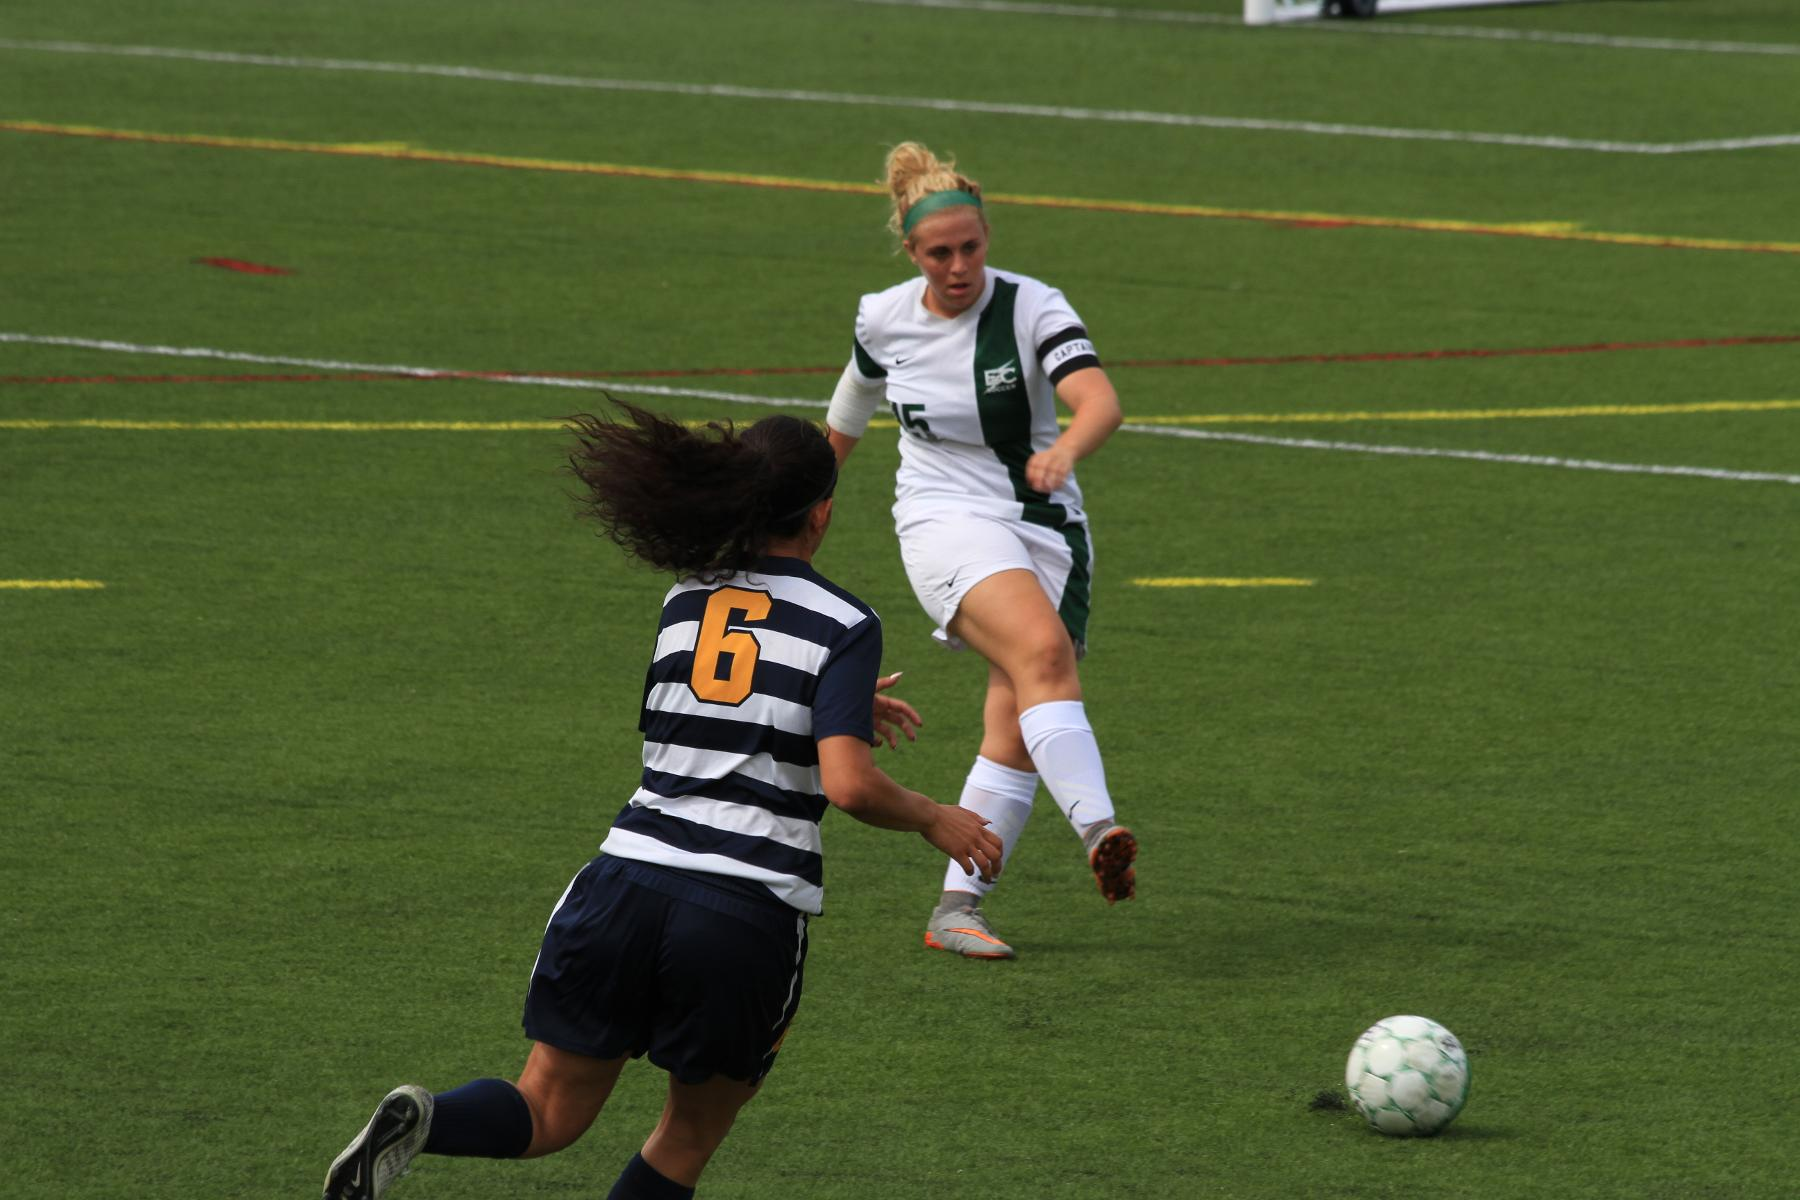 Women's Soccer Blanks Southern Maine In Home Opener